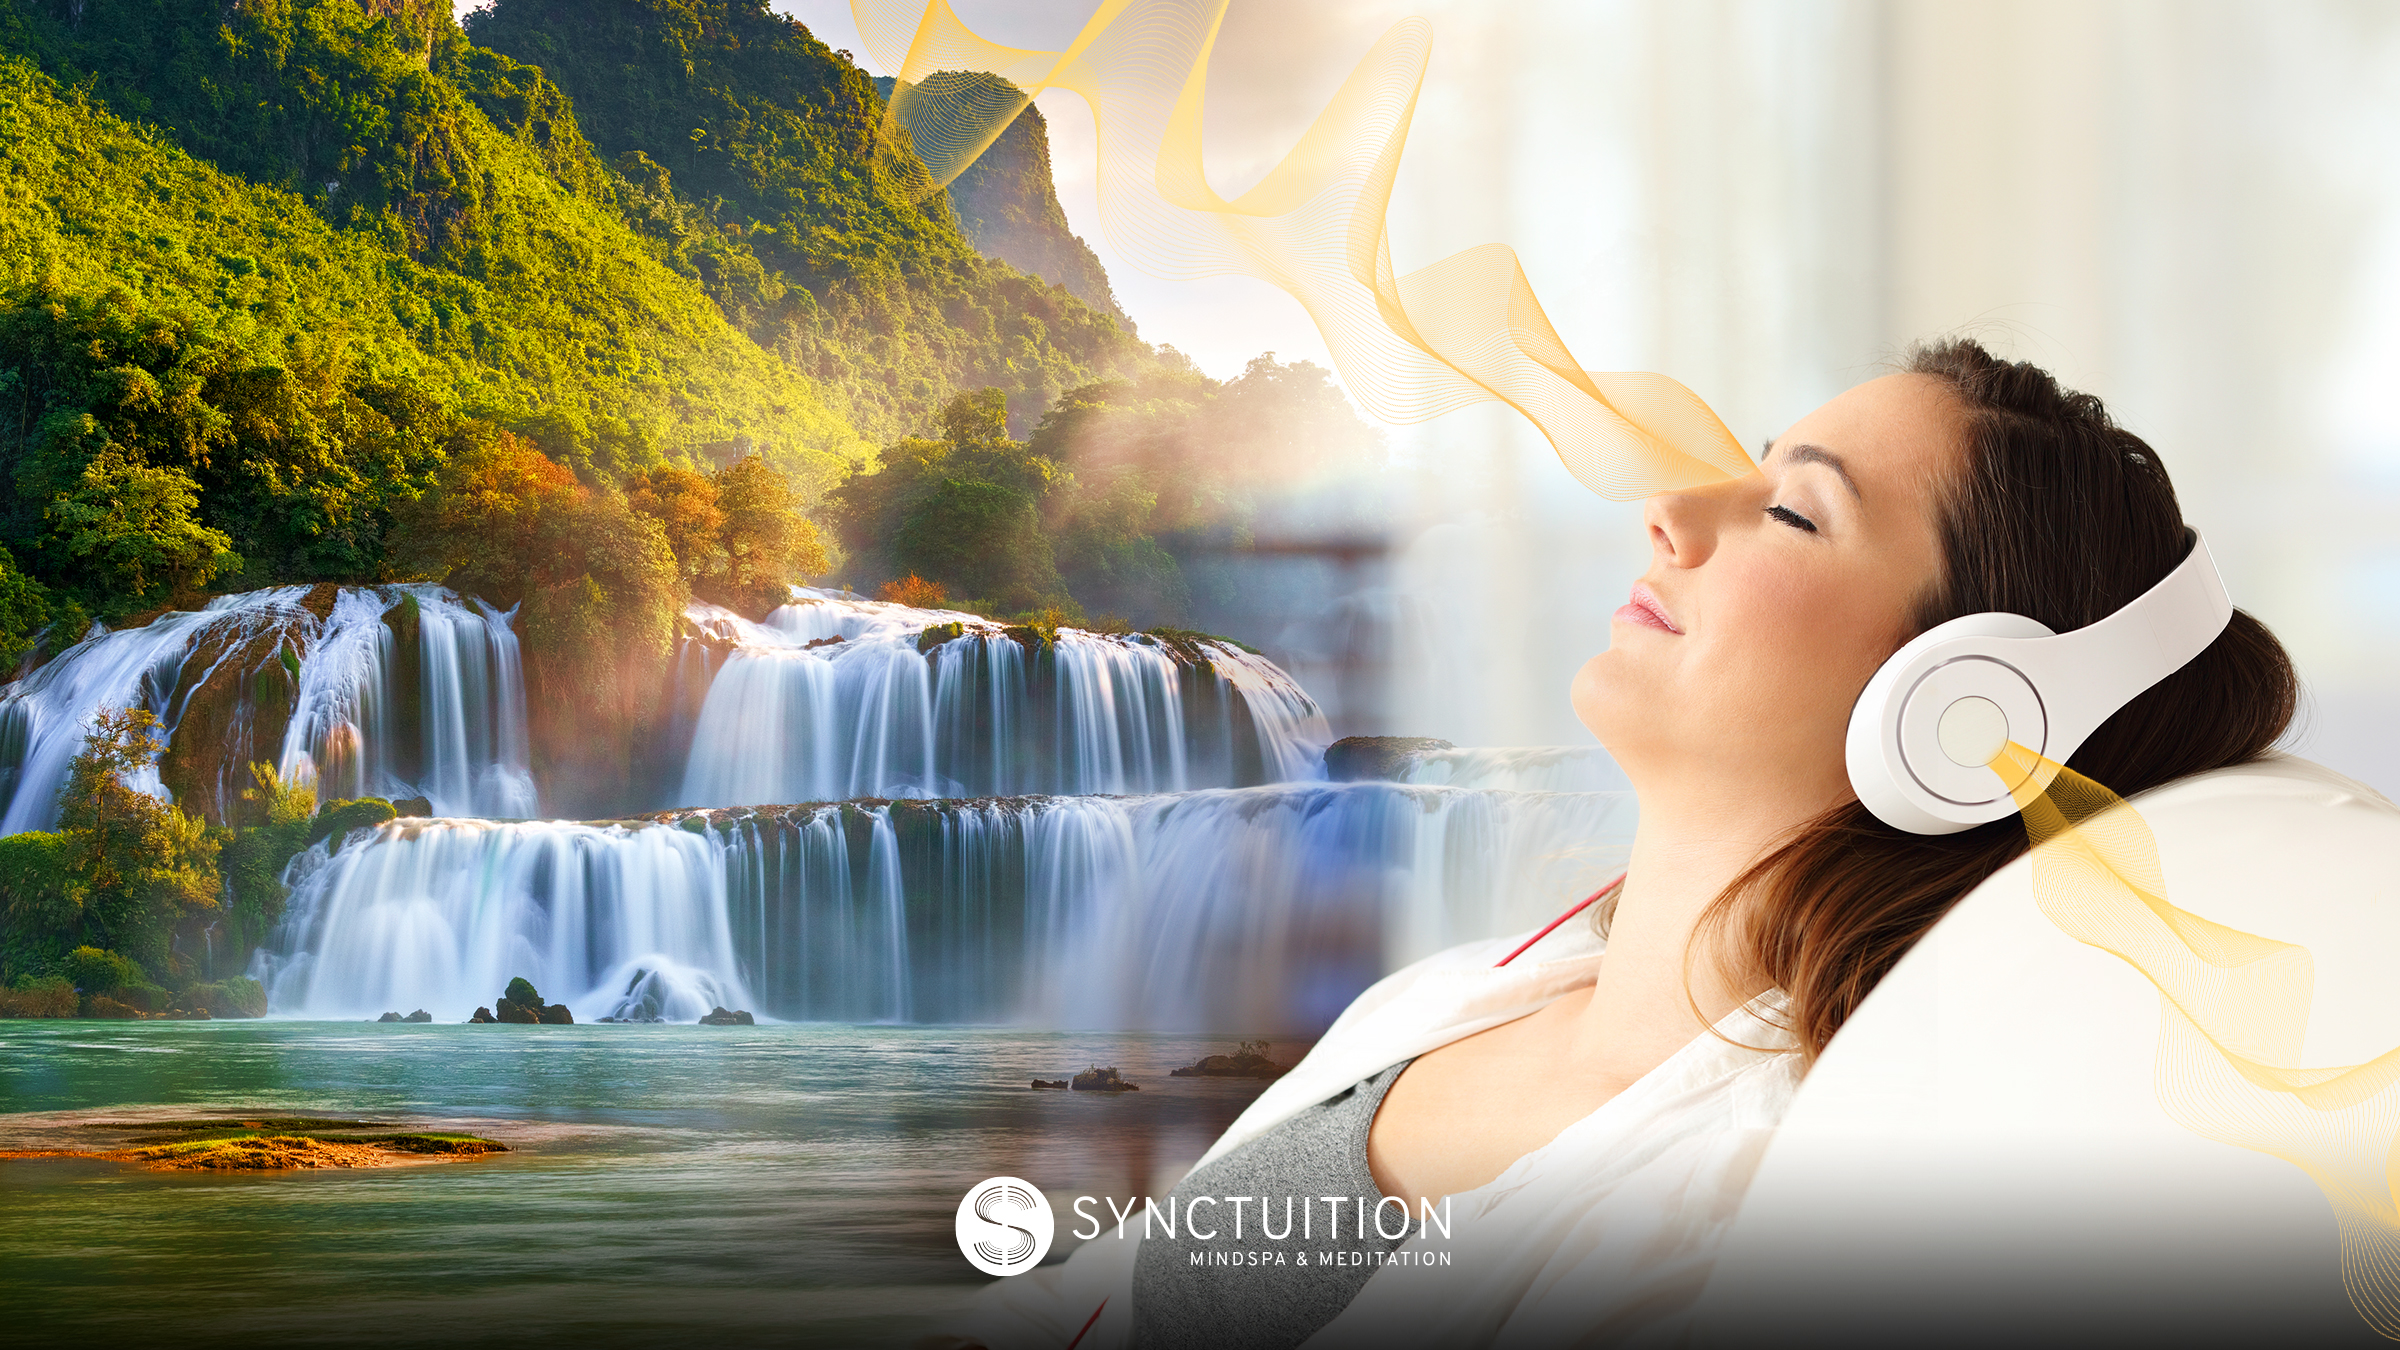 Listen to Synctuition as part of your sleep hygiene routine.